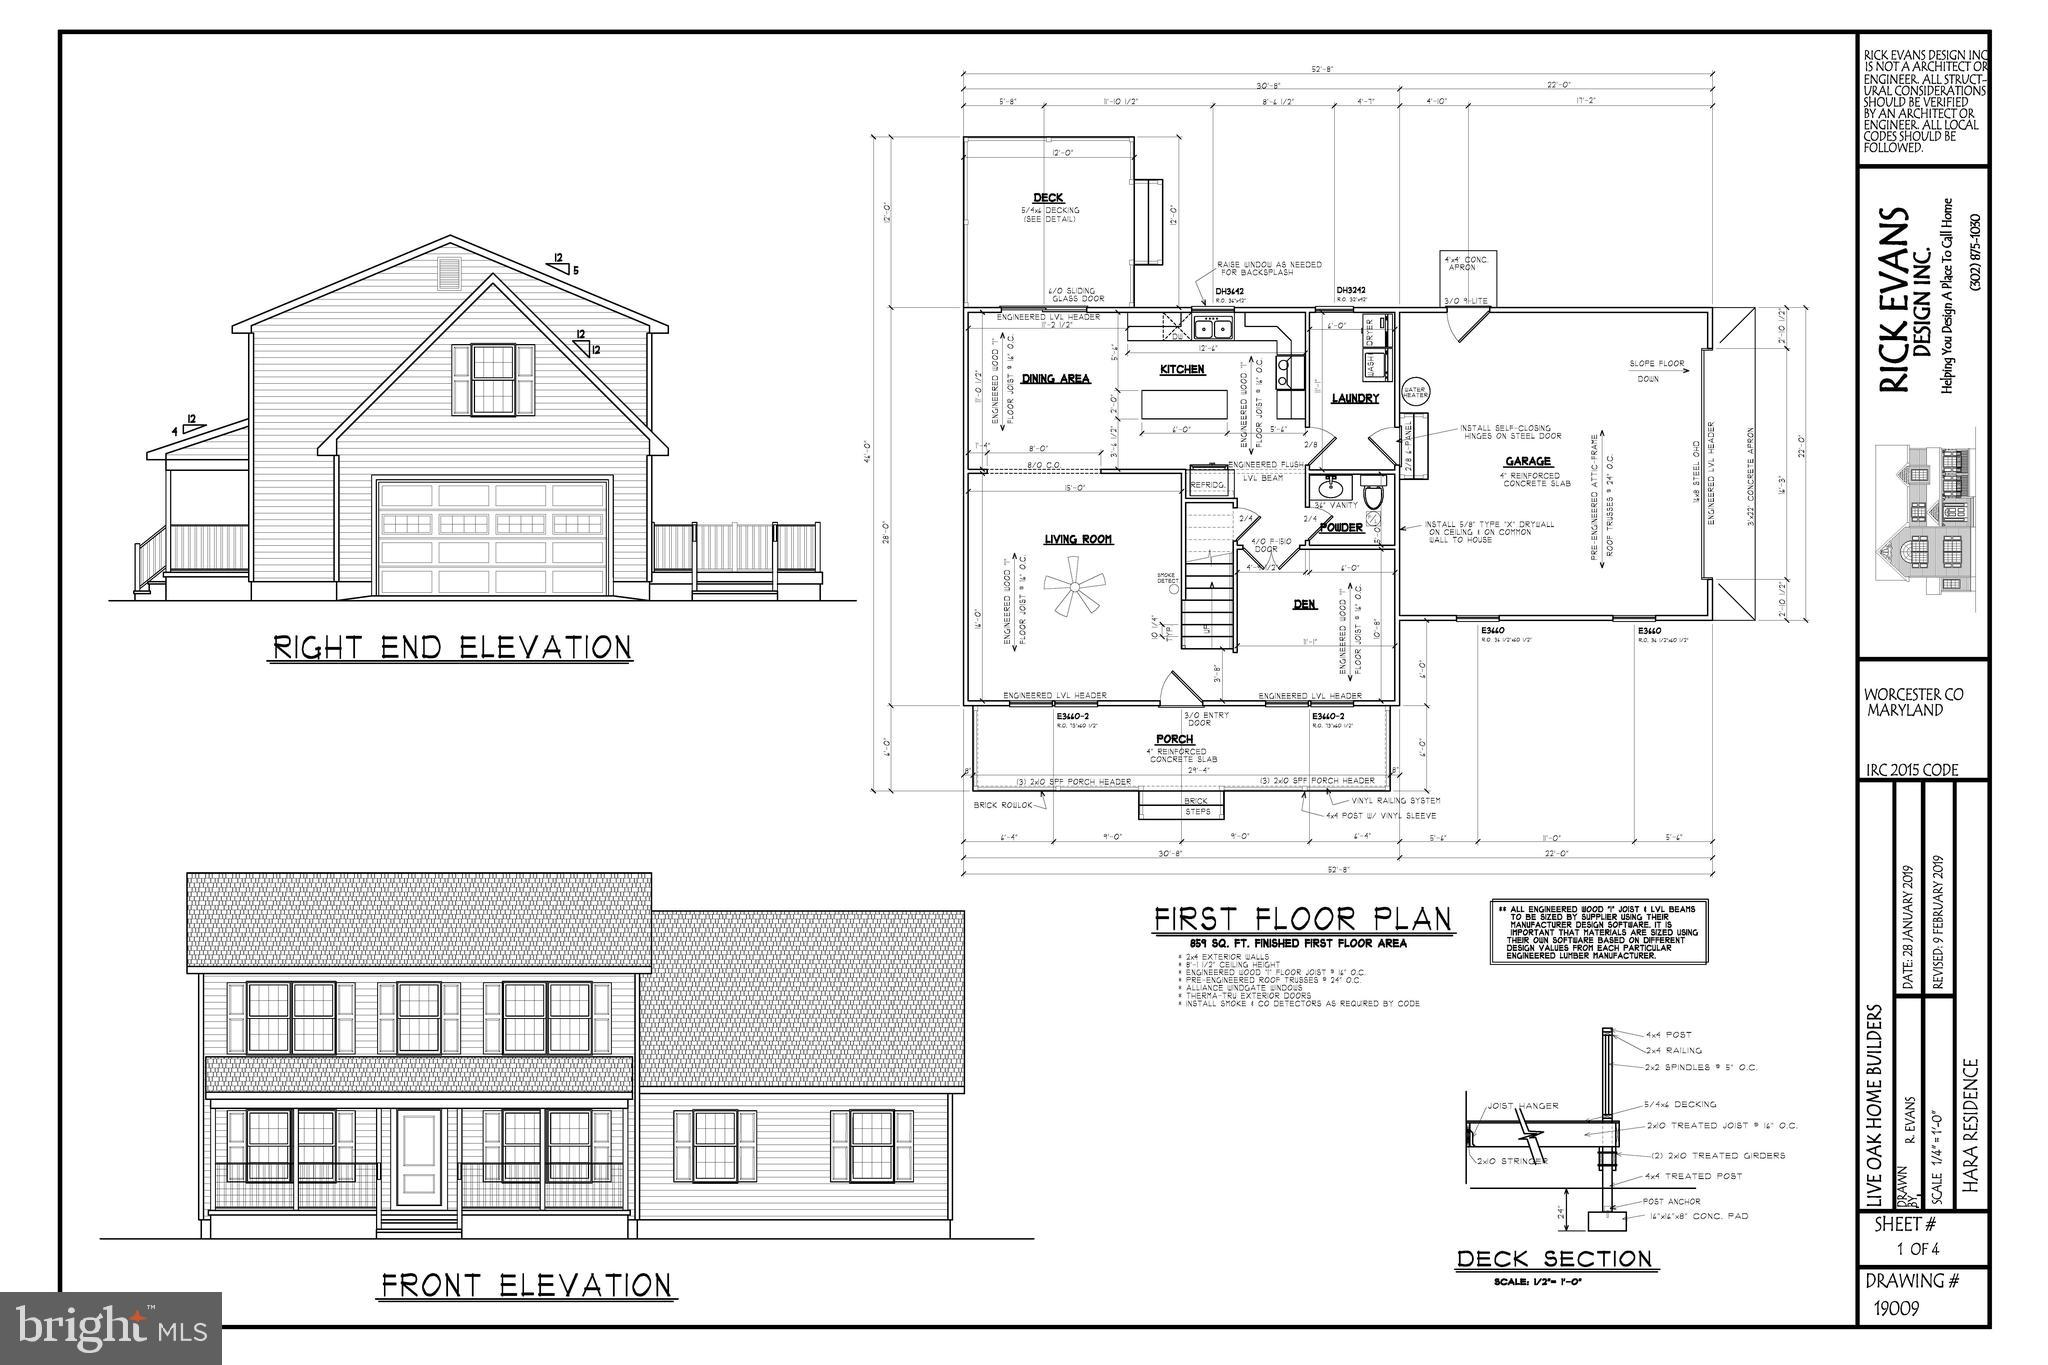 Lot 2-A WHITON CROSSING ROAD, SNOW HILL, MD 21863